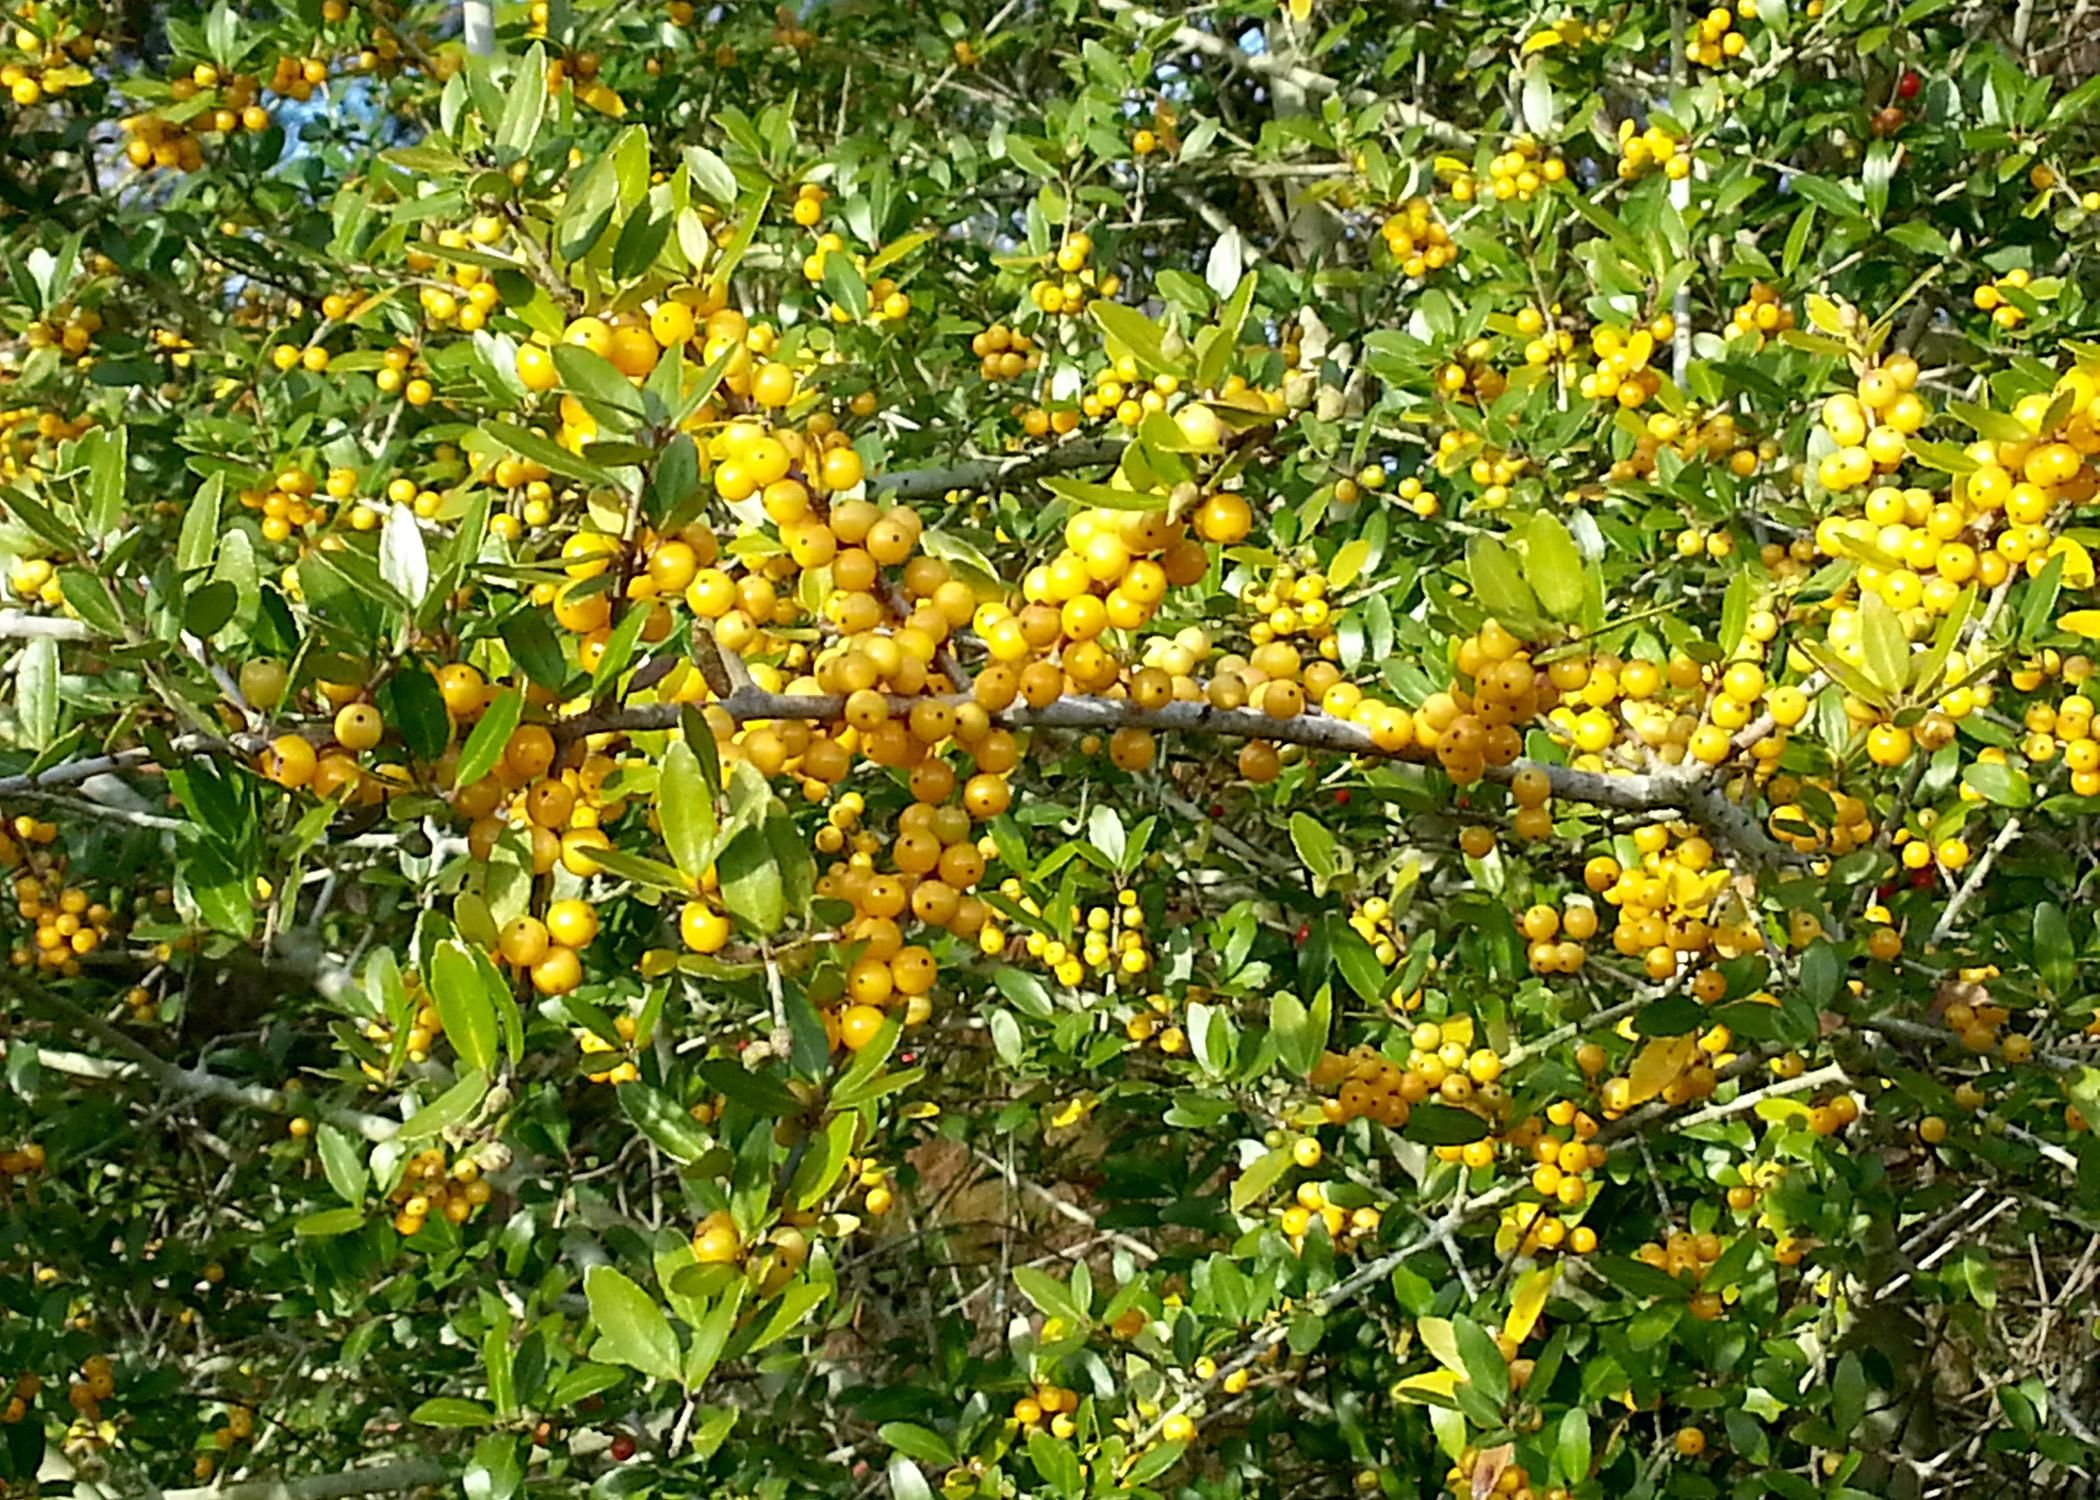 Although most Yaupon holly berries are red, a few commercially available selections have a mutation that produces yellow berries. (Photo by MSU Extension Service/Gary Bachman)